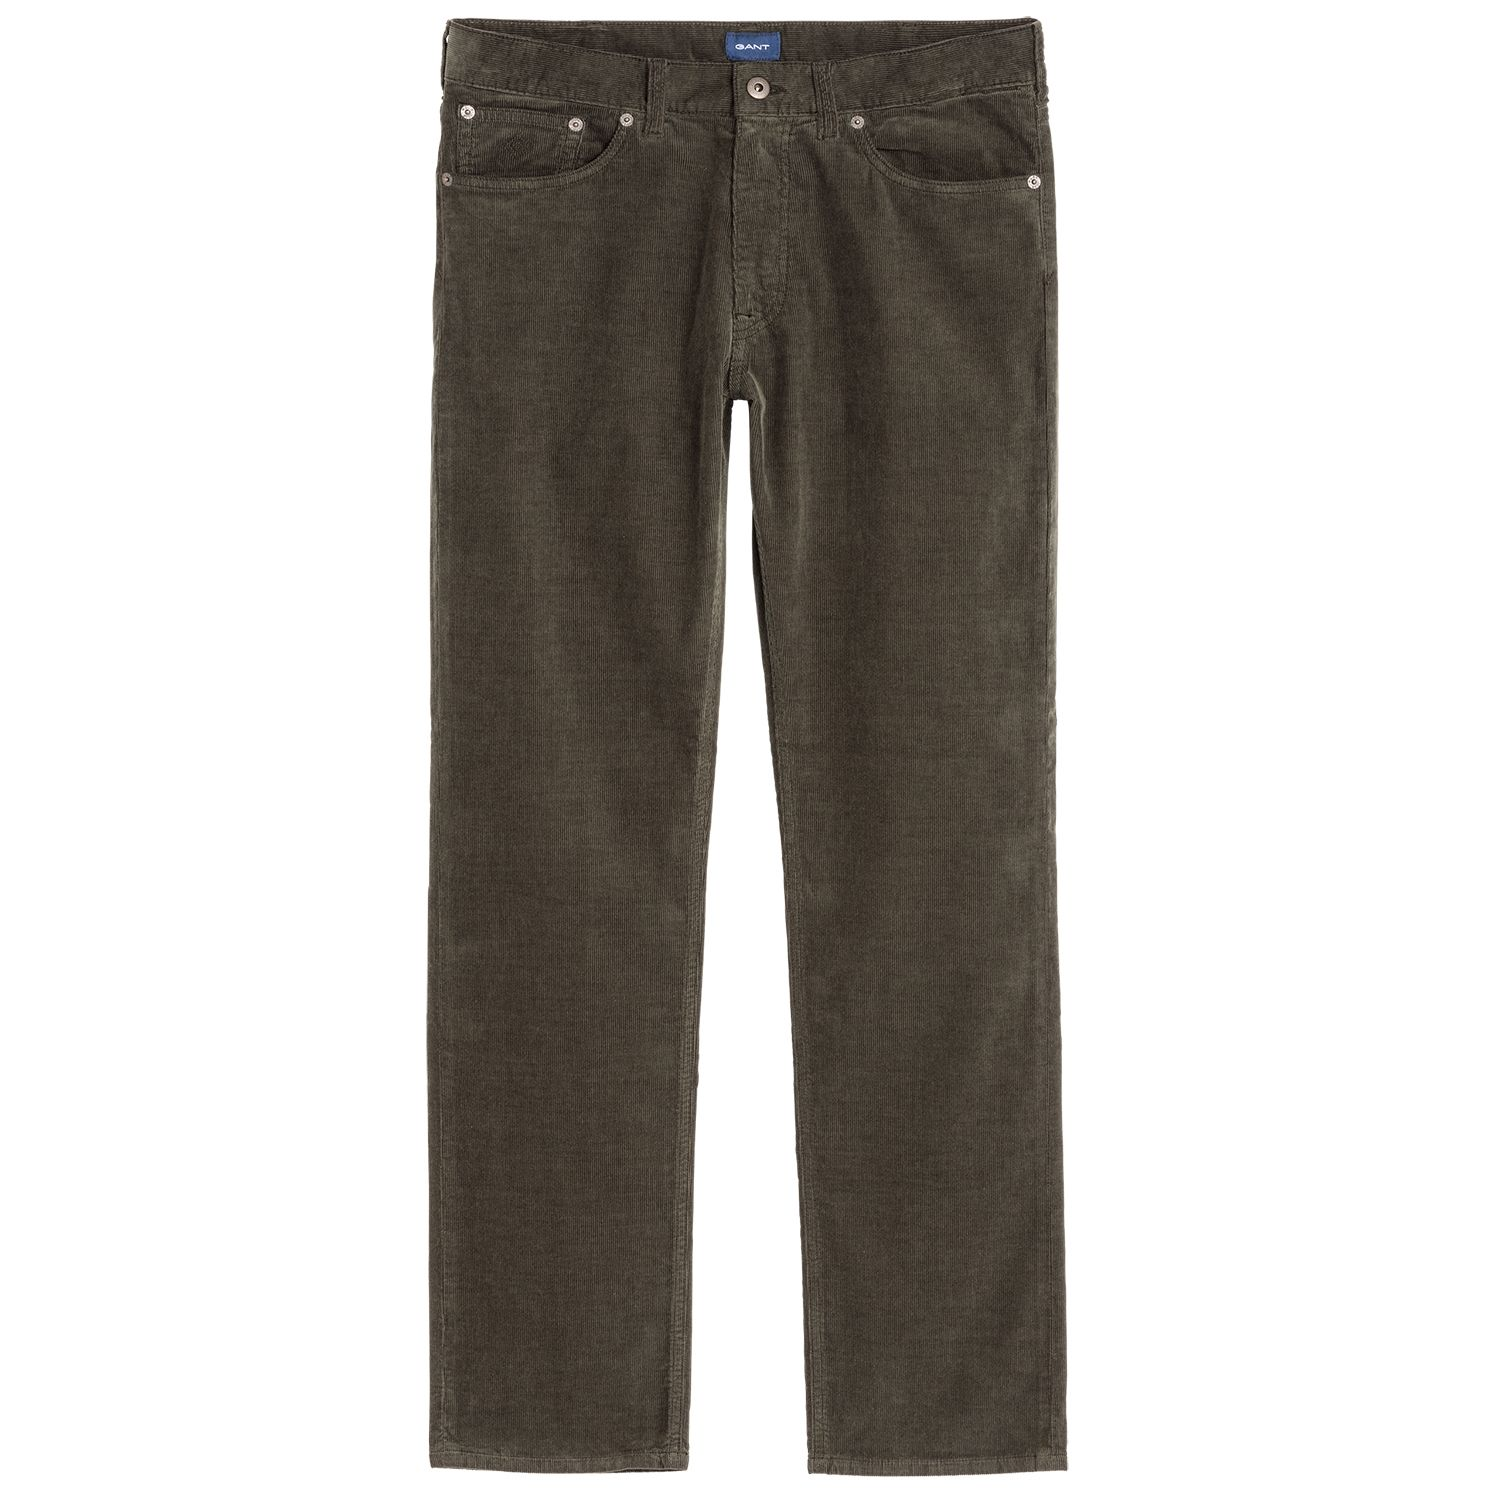 GANT Country Green Regular Cord Jeans